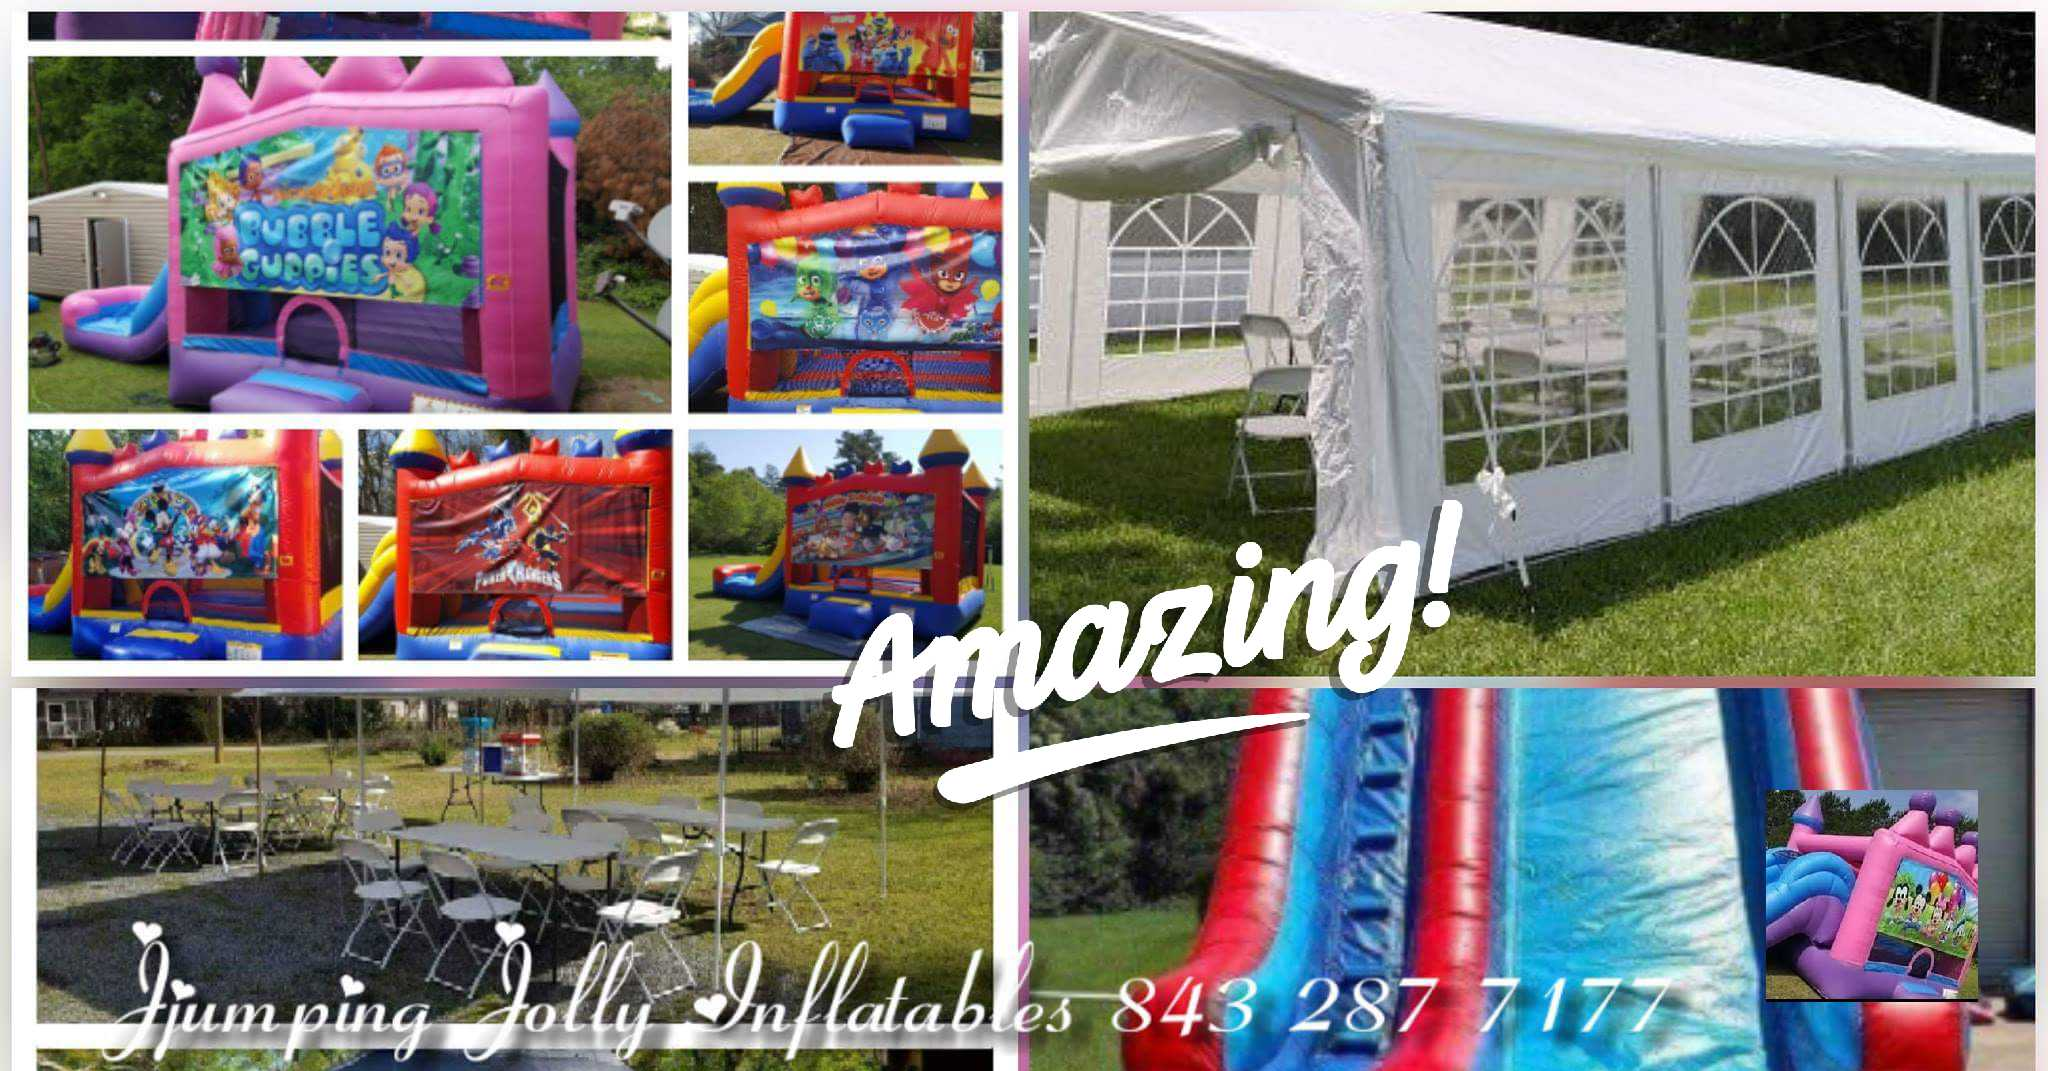 & Bounce houses wedding tents/ party tents waterslides